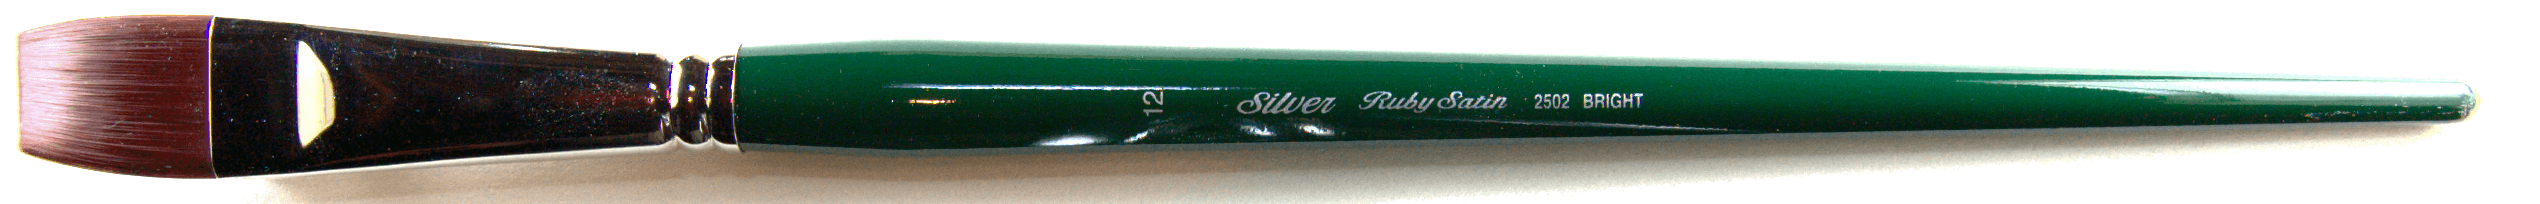 Silver Brushes